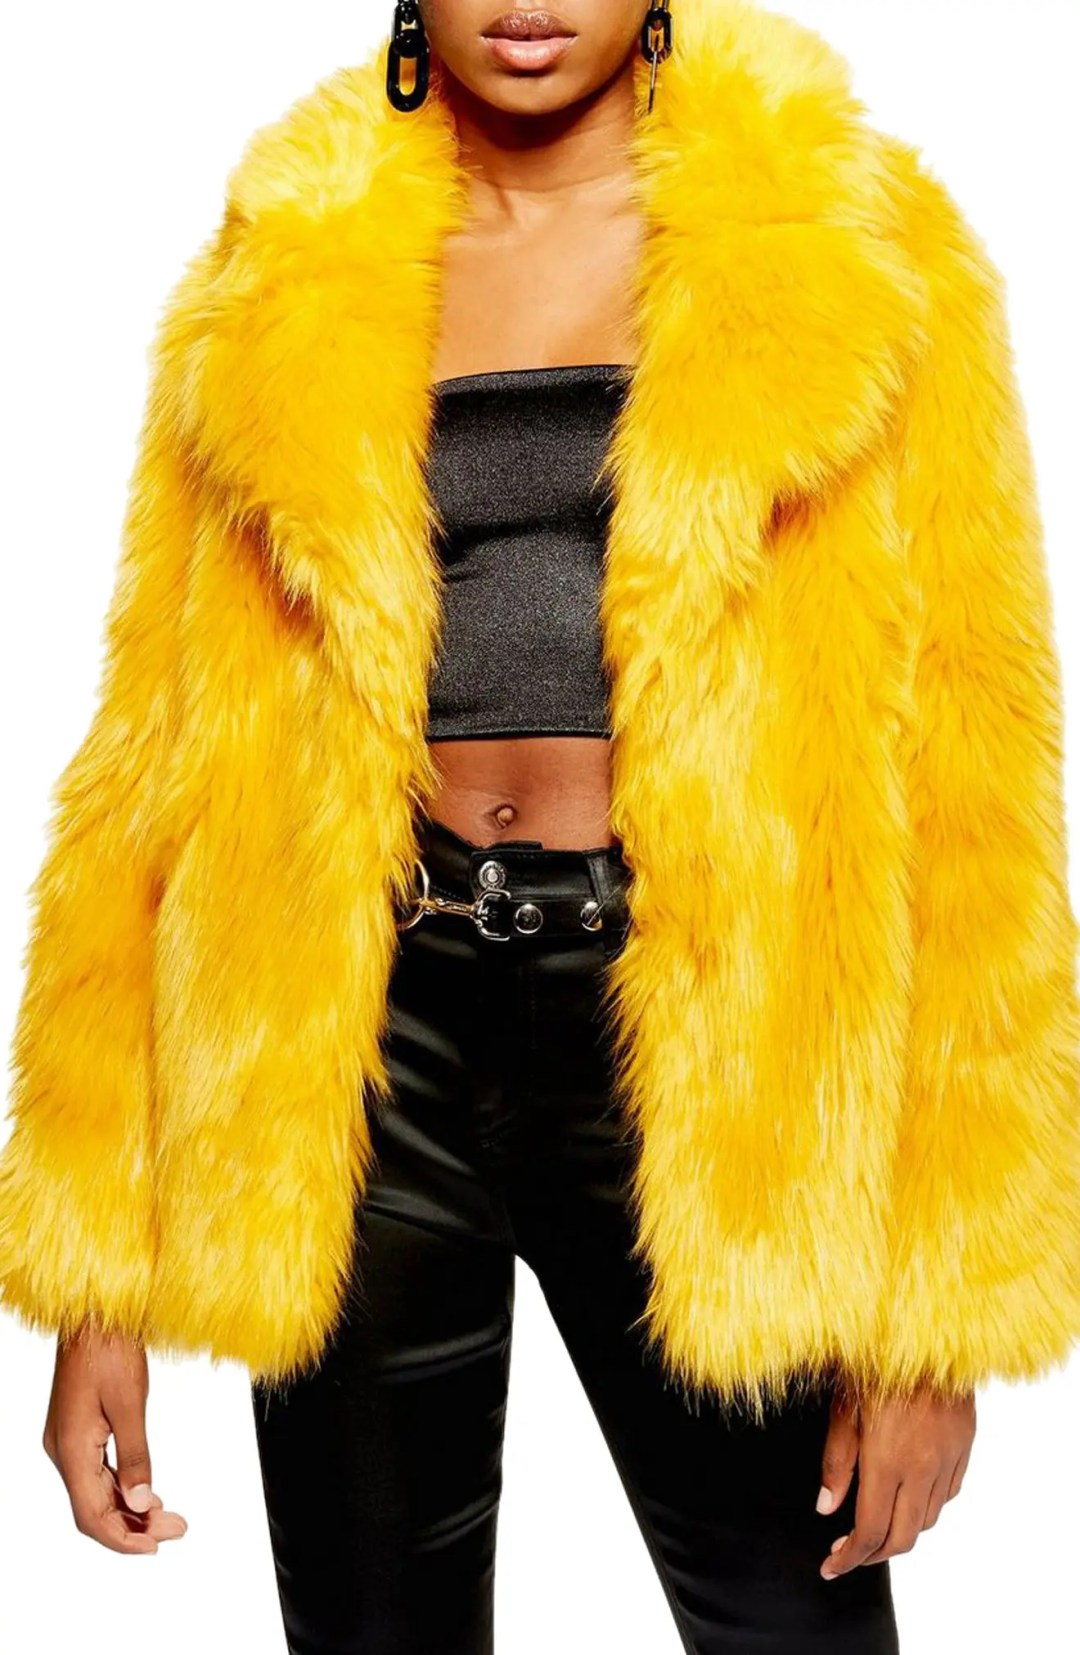 951229afb Women's Topshop Camille Hooded Faux Fur Coat – TOPSHOP AT NORDSTROM –  $150.00